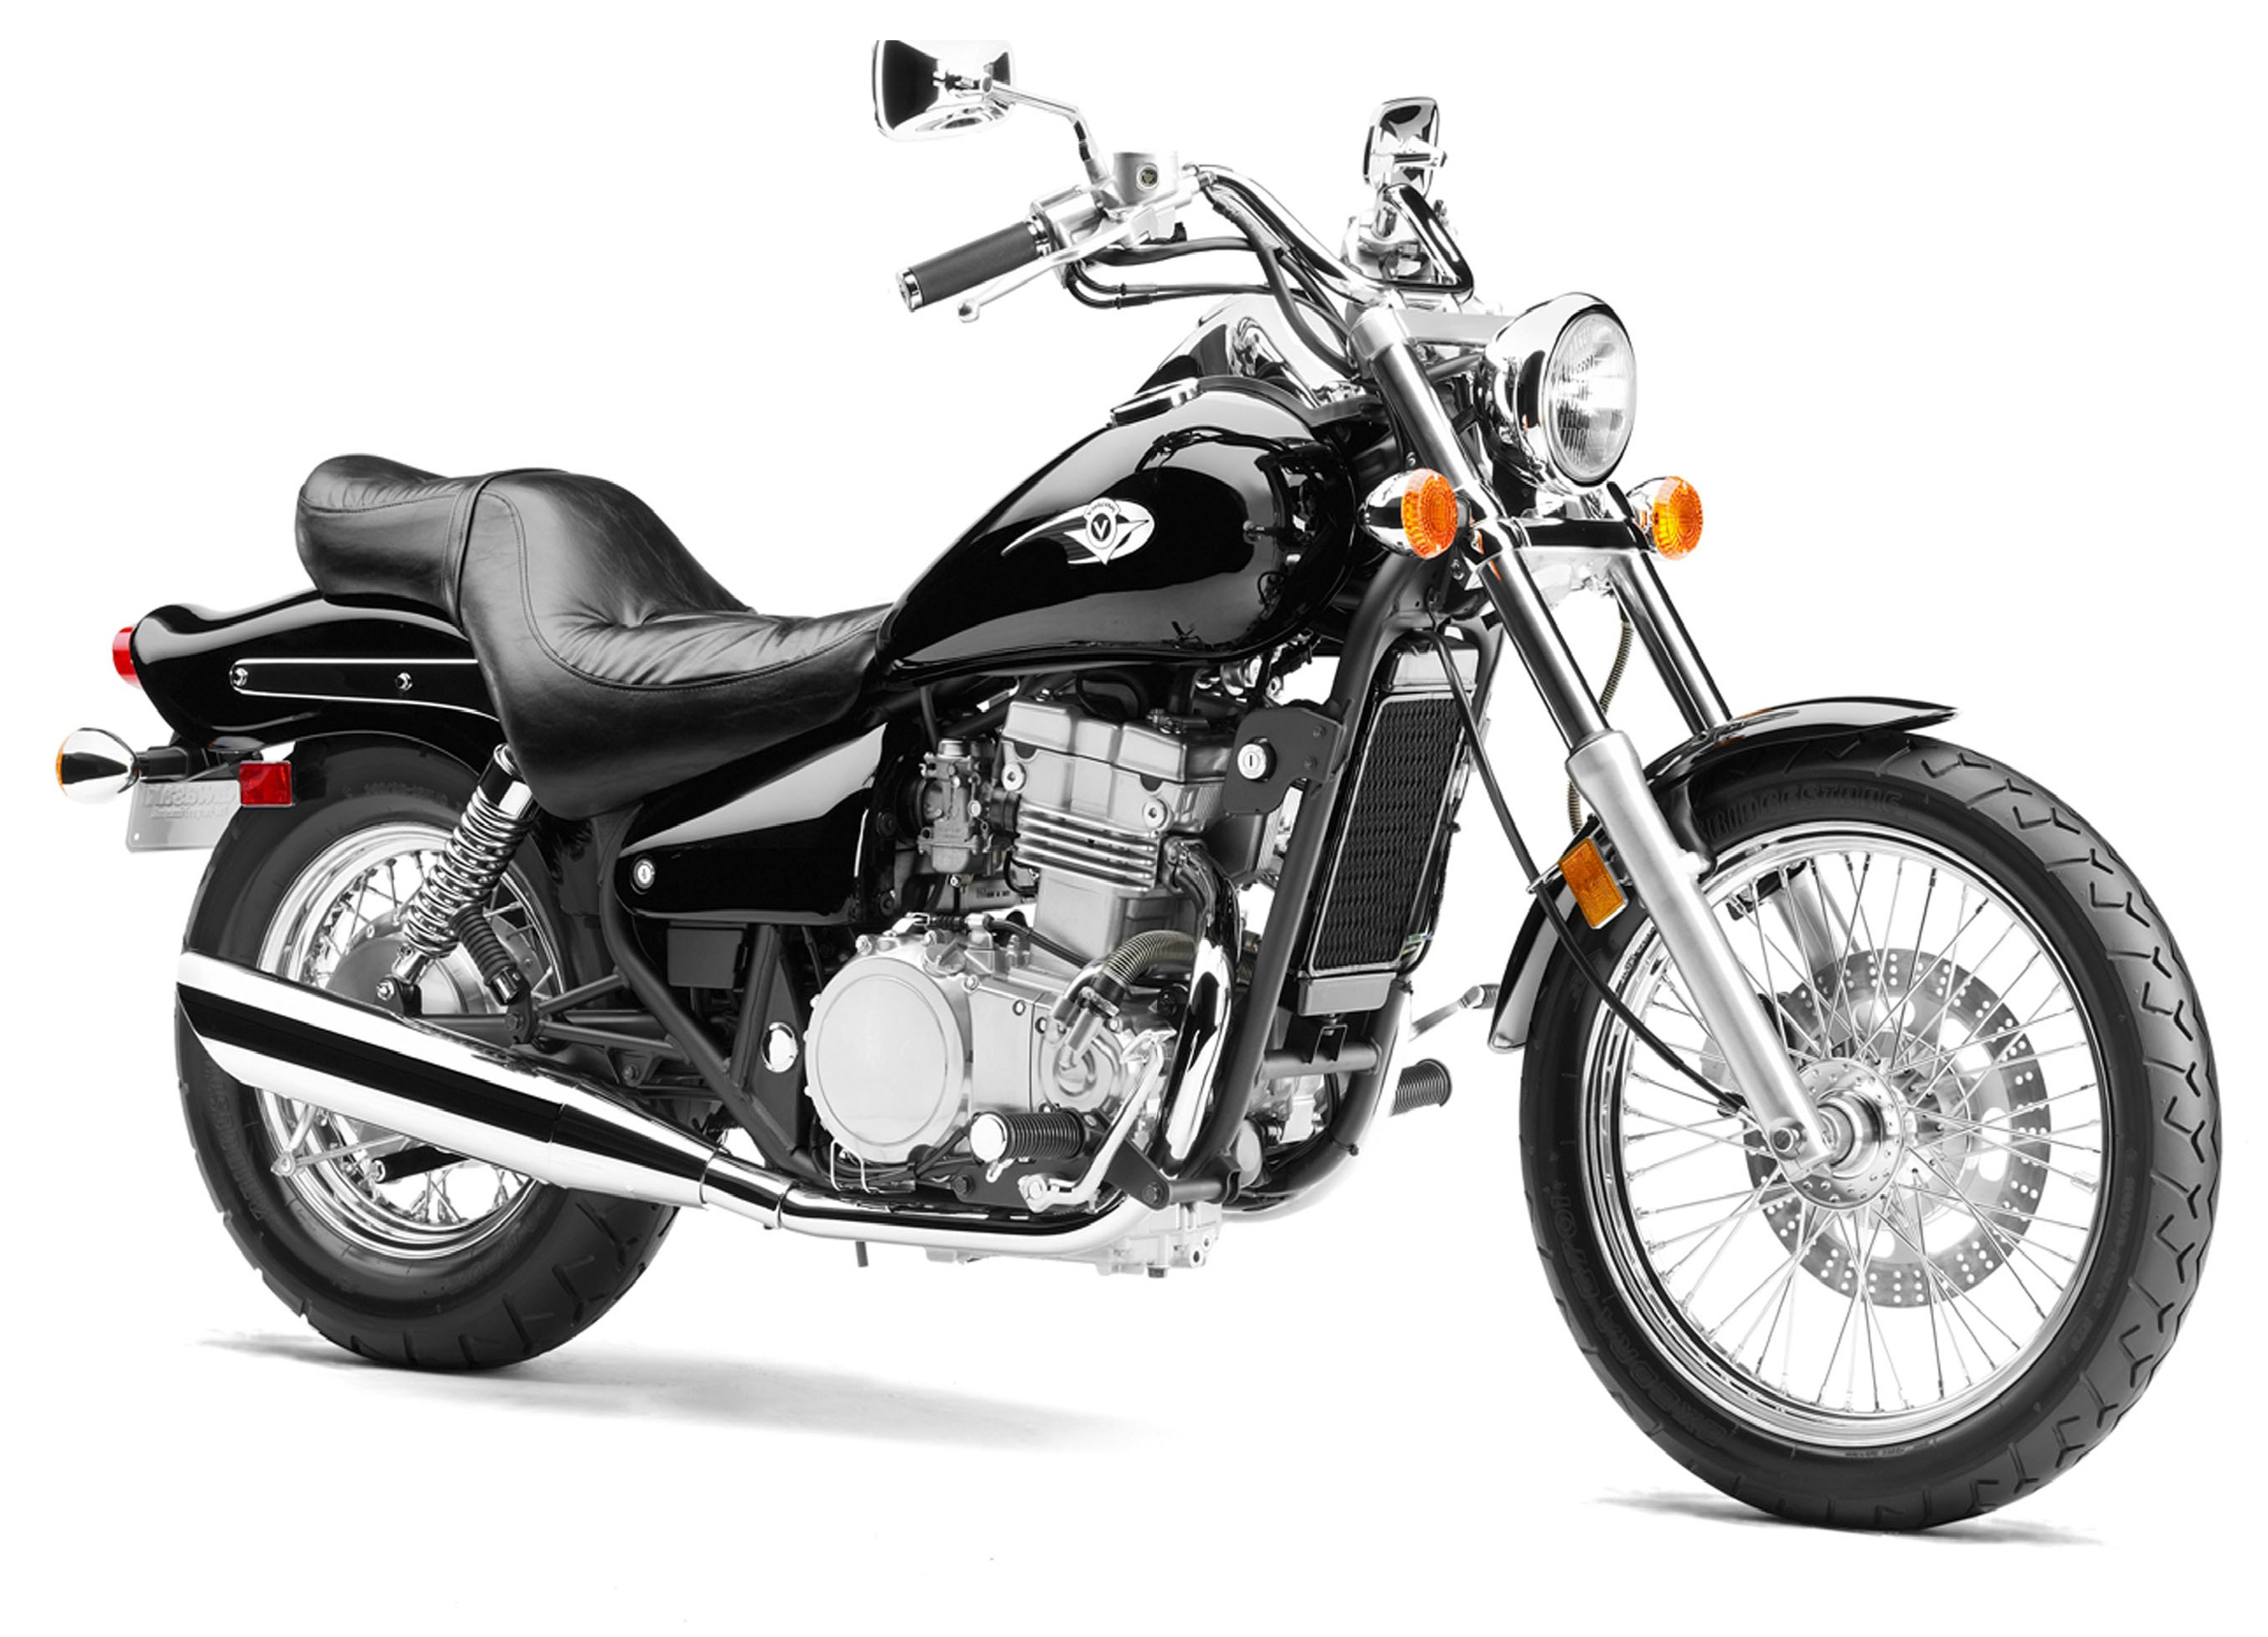 KAWASAKI VULCAN 500 Reviews, Price, Specifications, Mileage ...